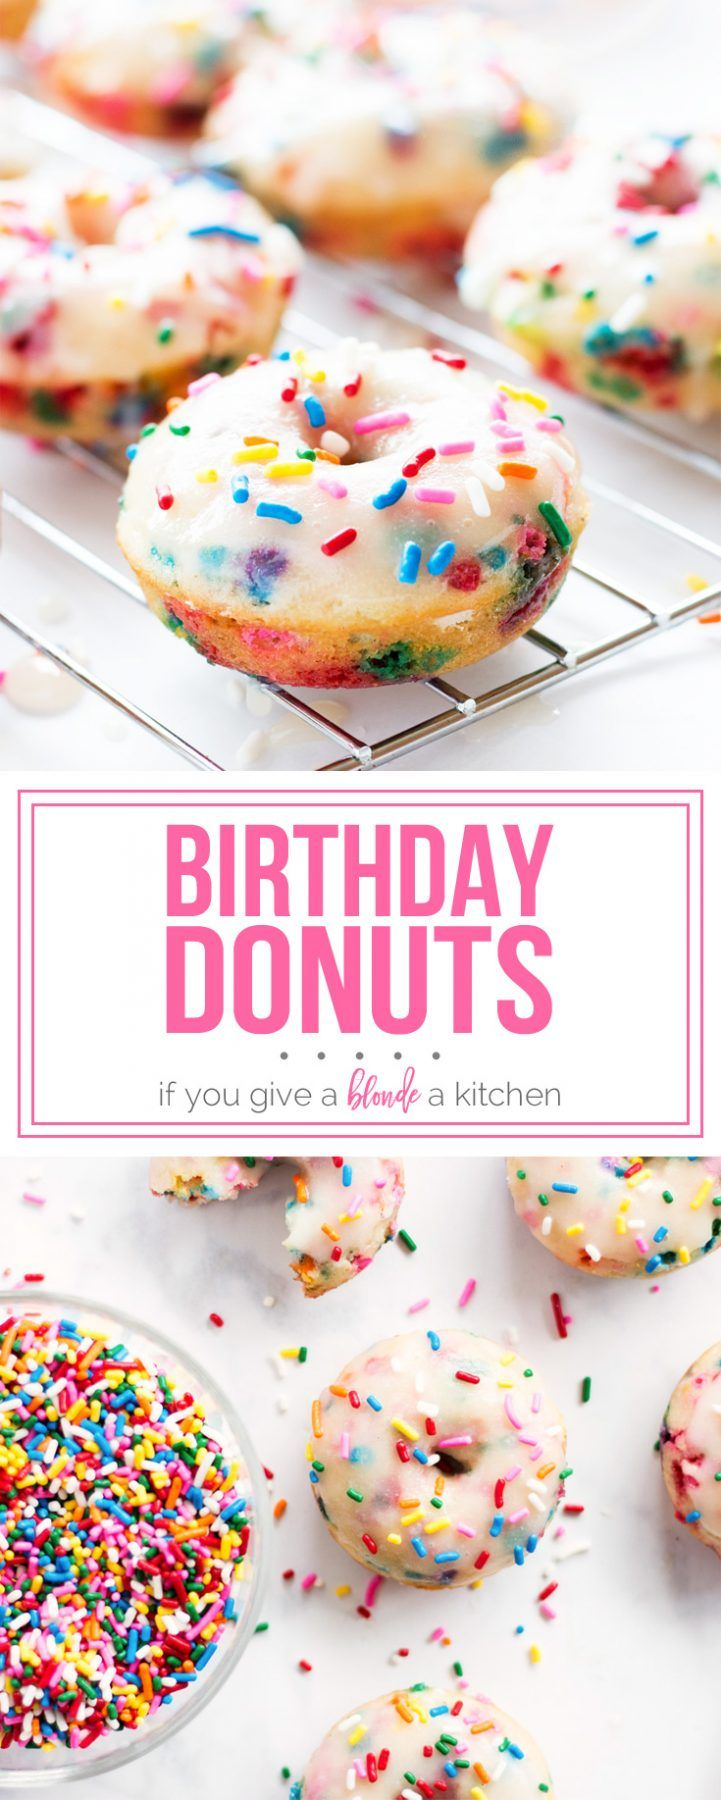 Birthday donuts are filled with funfetti sprinkles and topped with a sugary glaze. | www.ifyougiveablondeakitchen.com